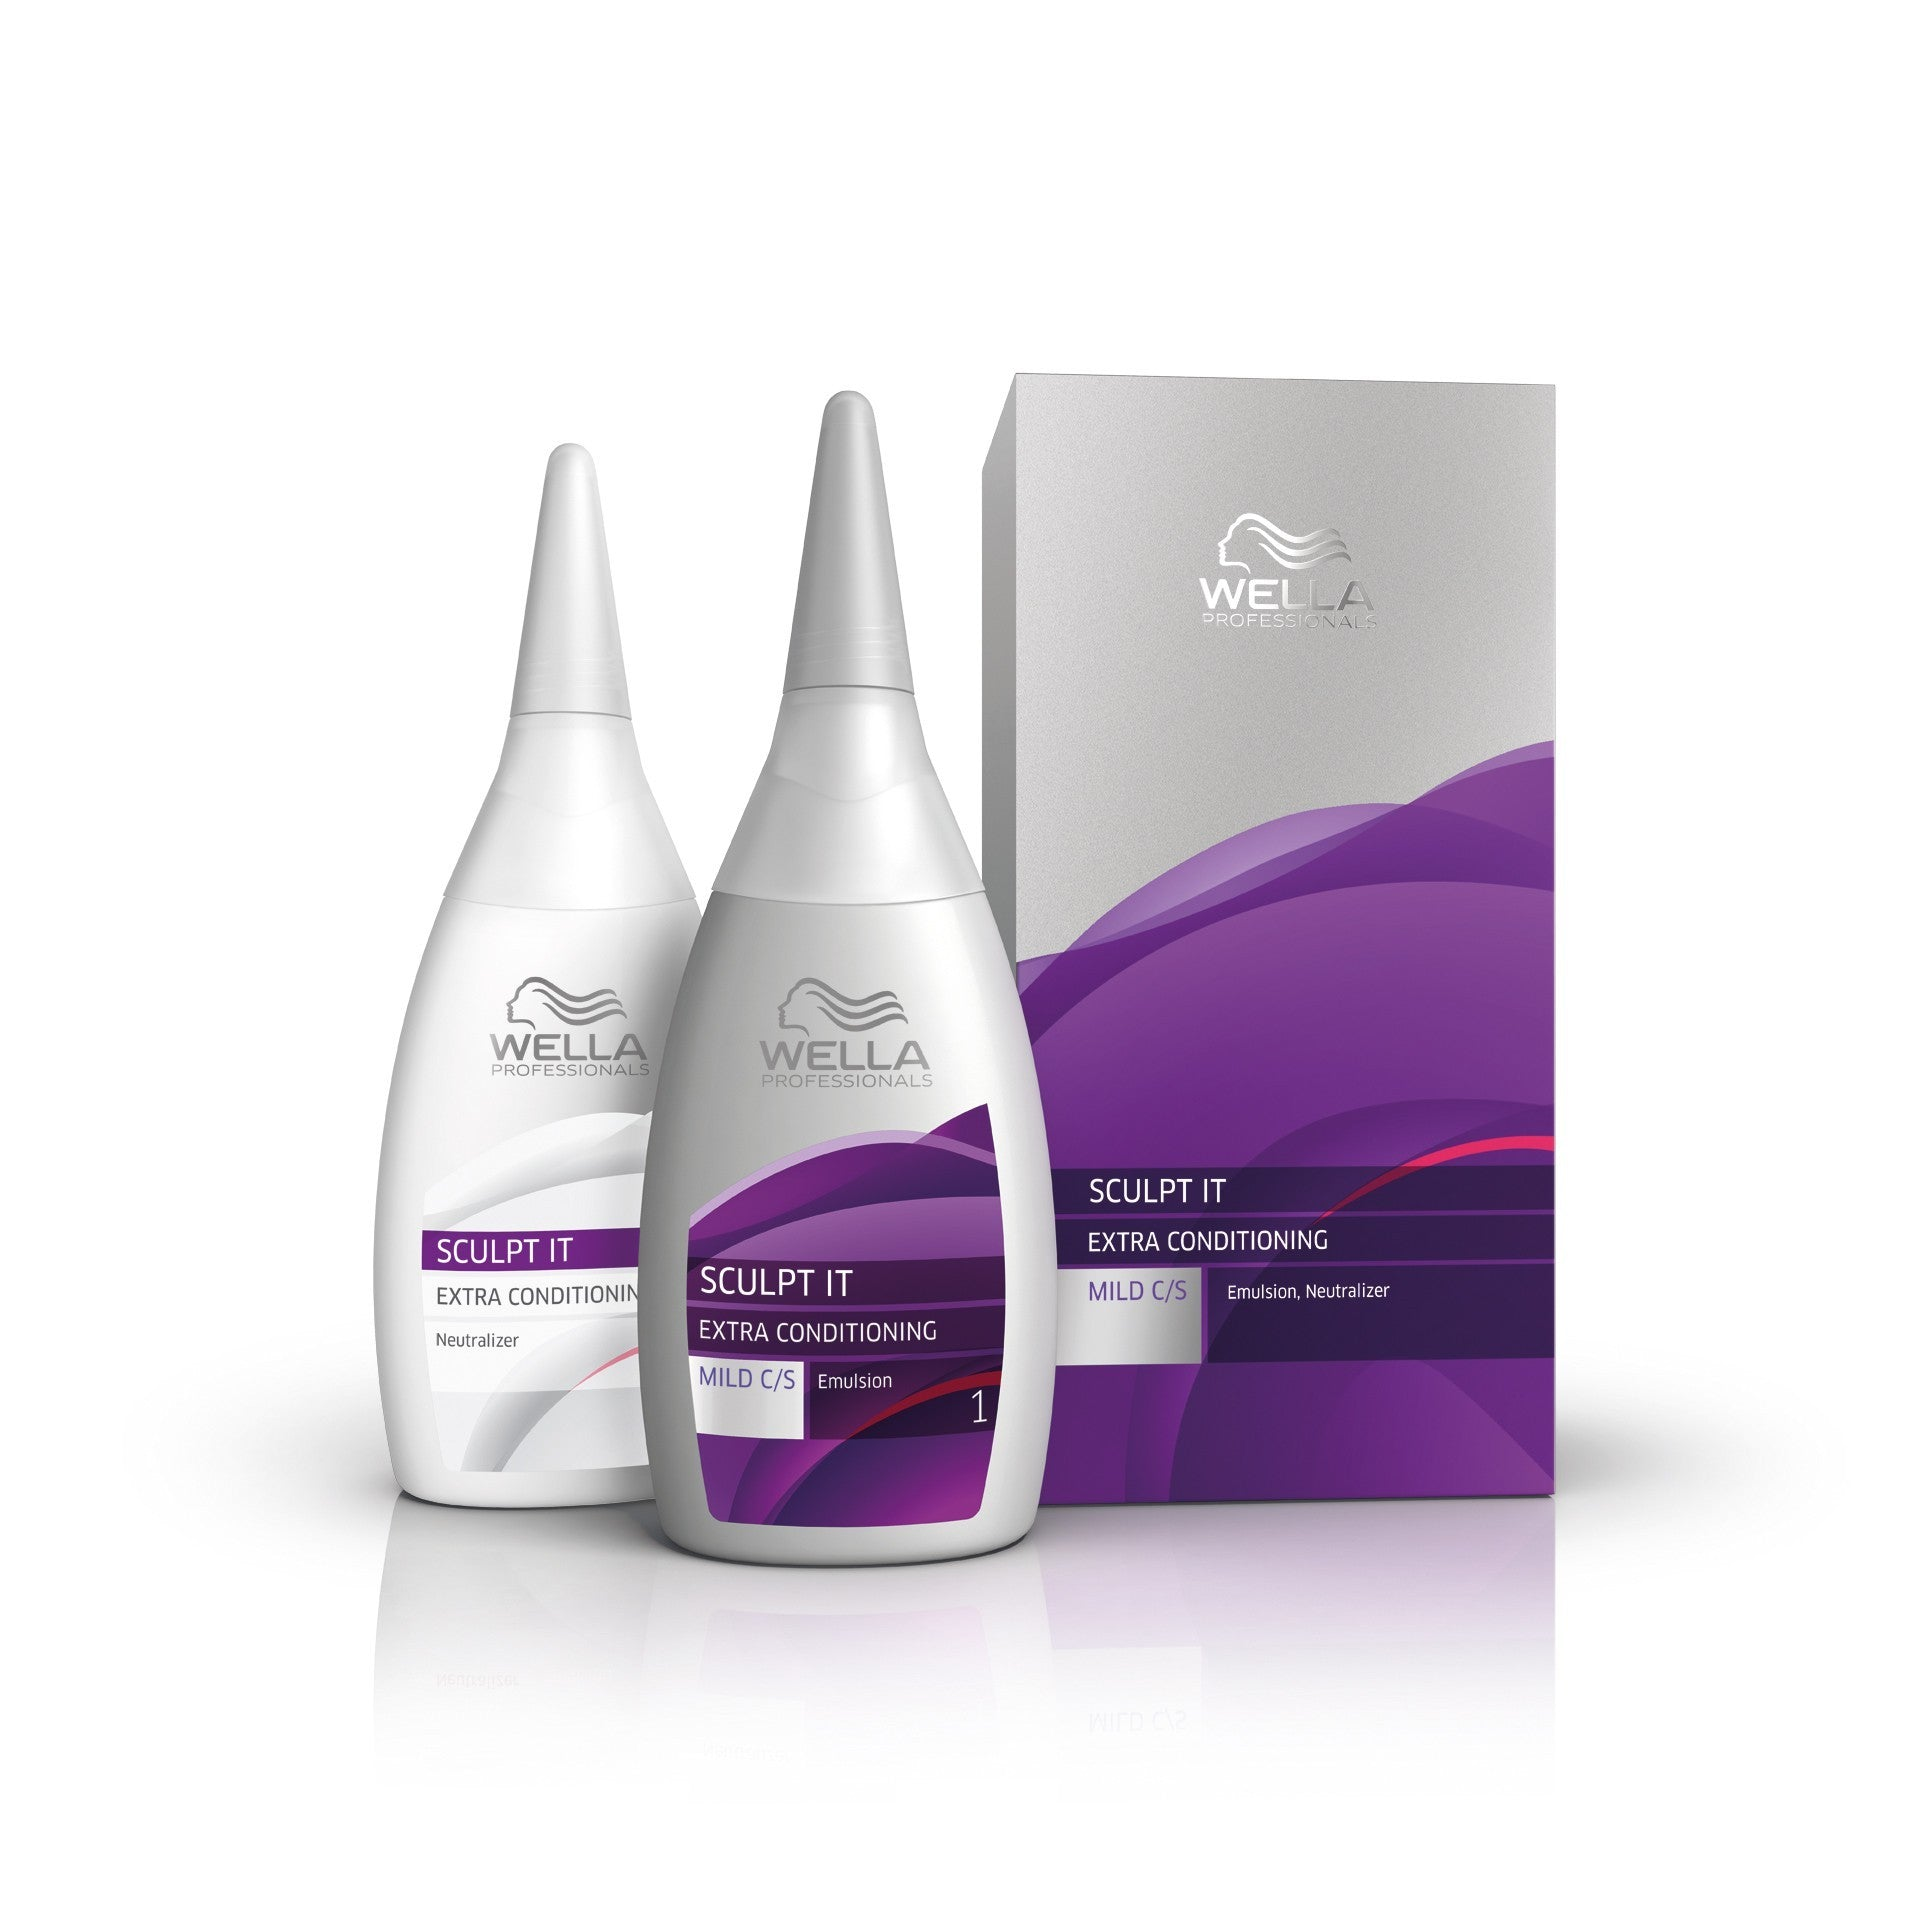 Wella Sculpt It Extra Conditioning Mild Kit - 100ml